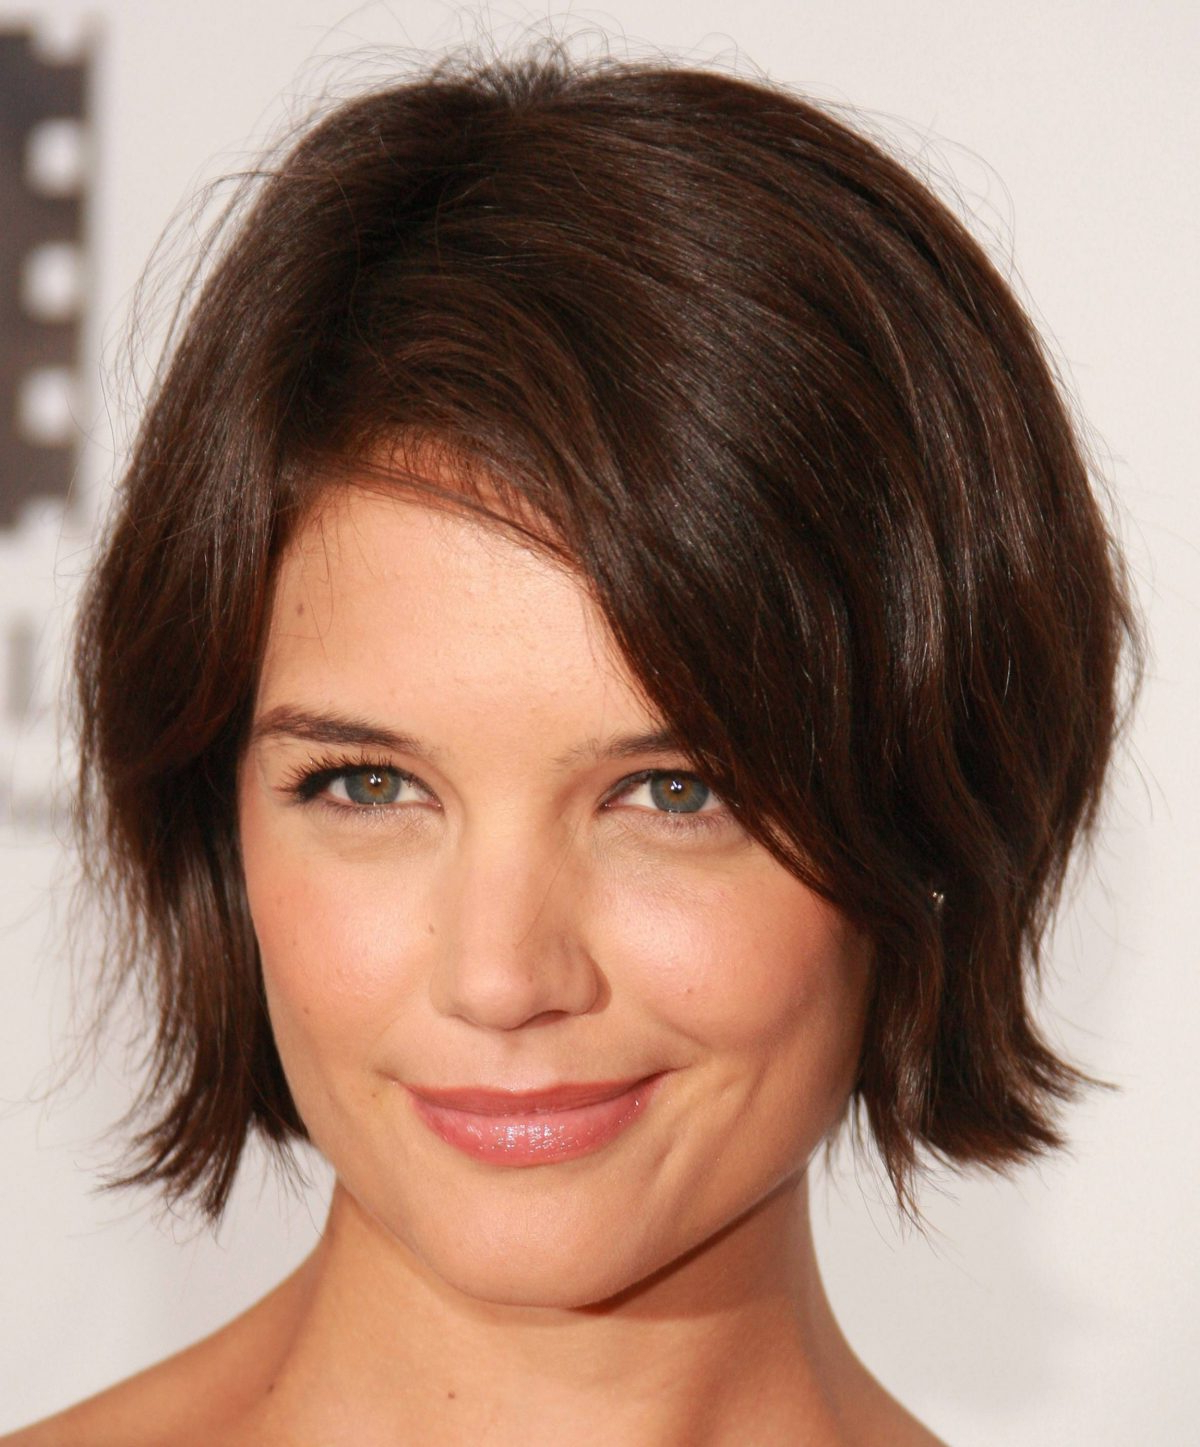 Best Short Hairstyles – Cute Hair Cut Guide For Round Face Shape Inside Short Hairstyles For Round Face (View 6 of 25)